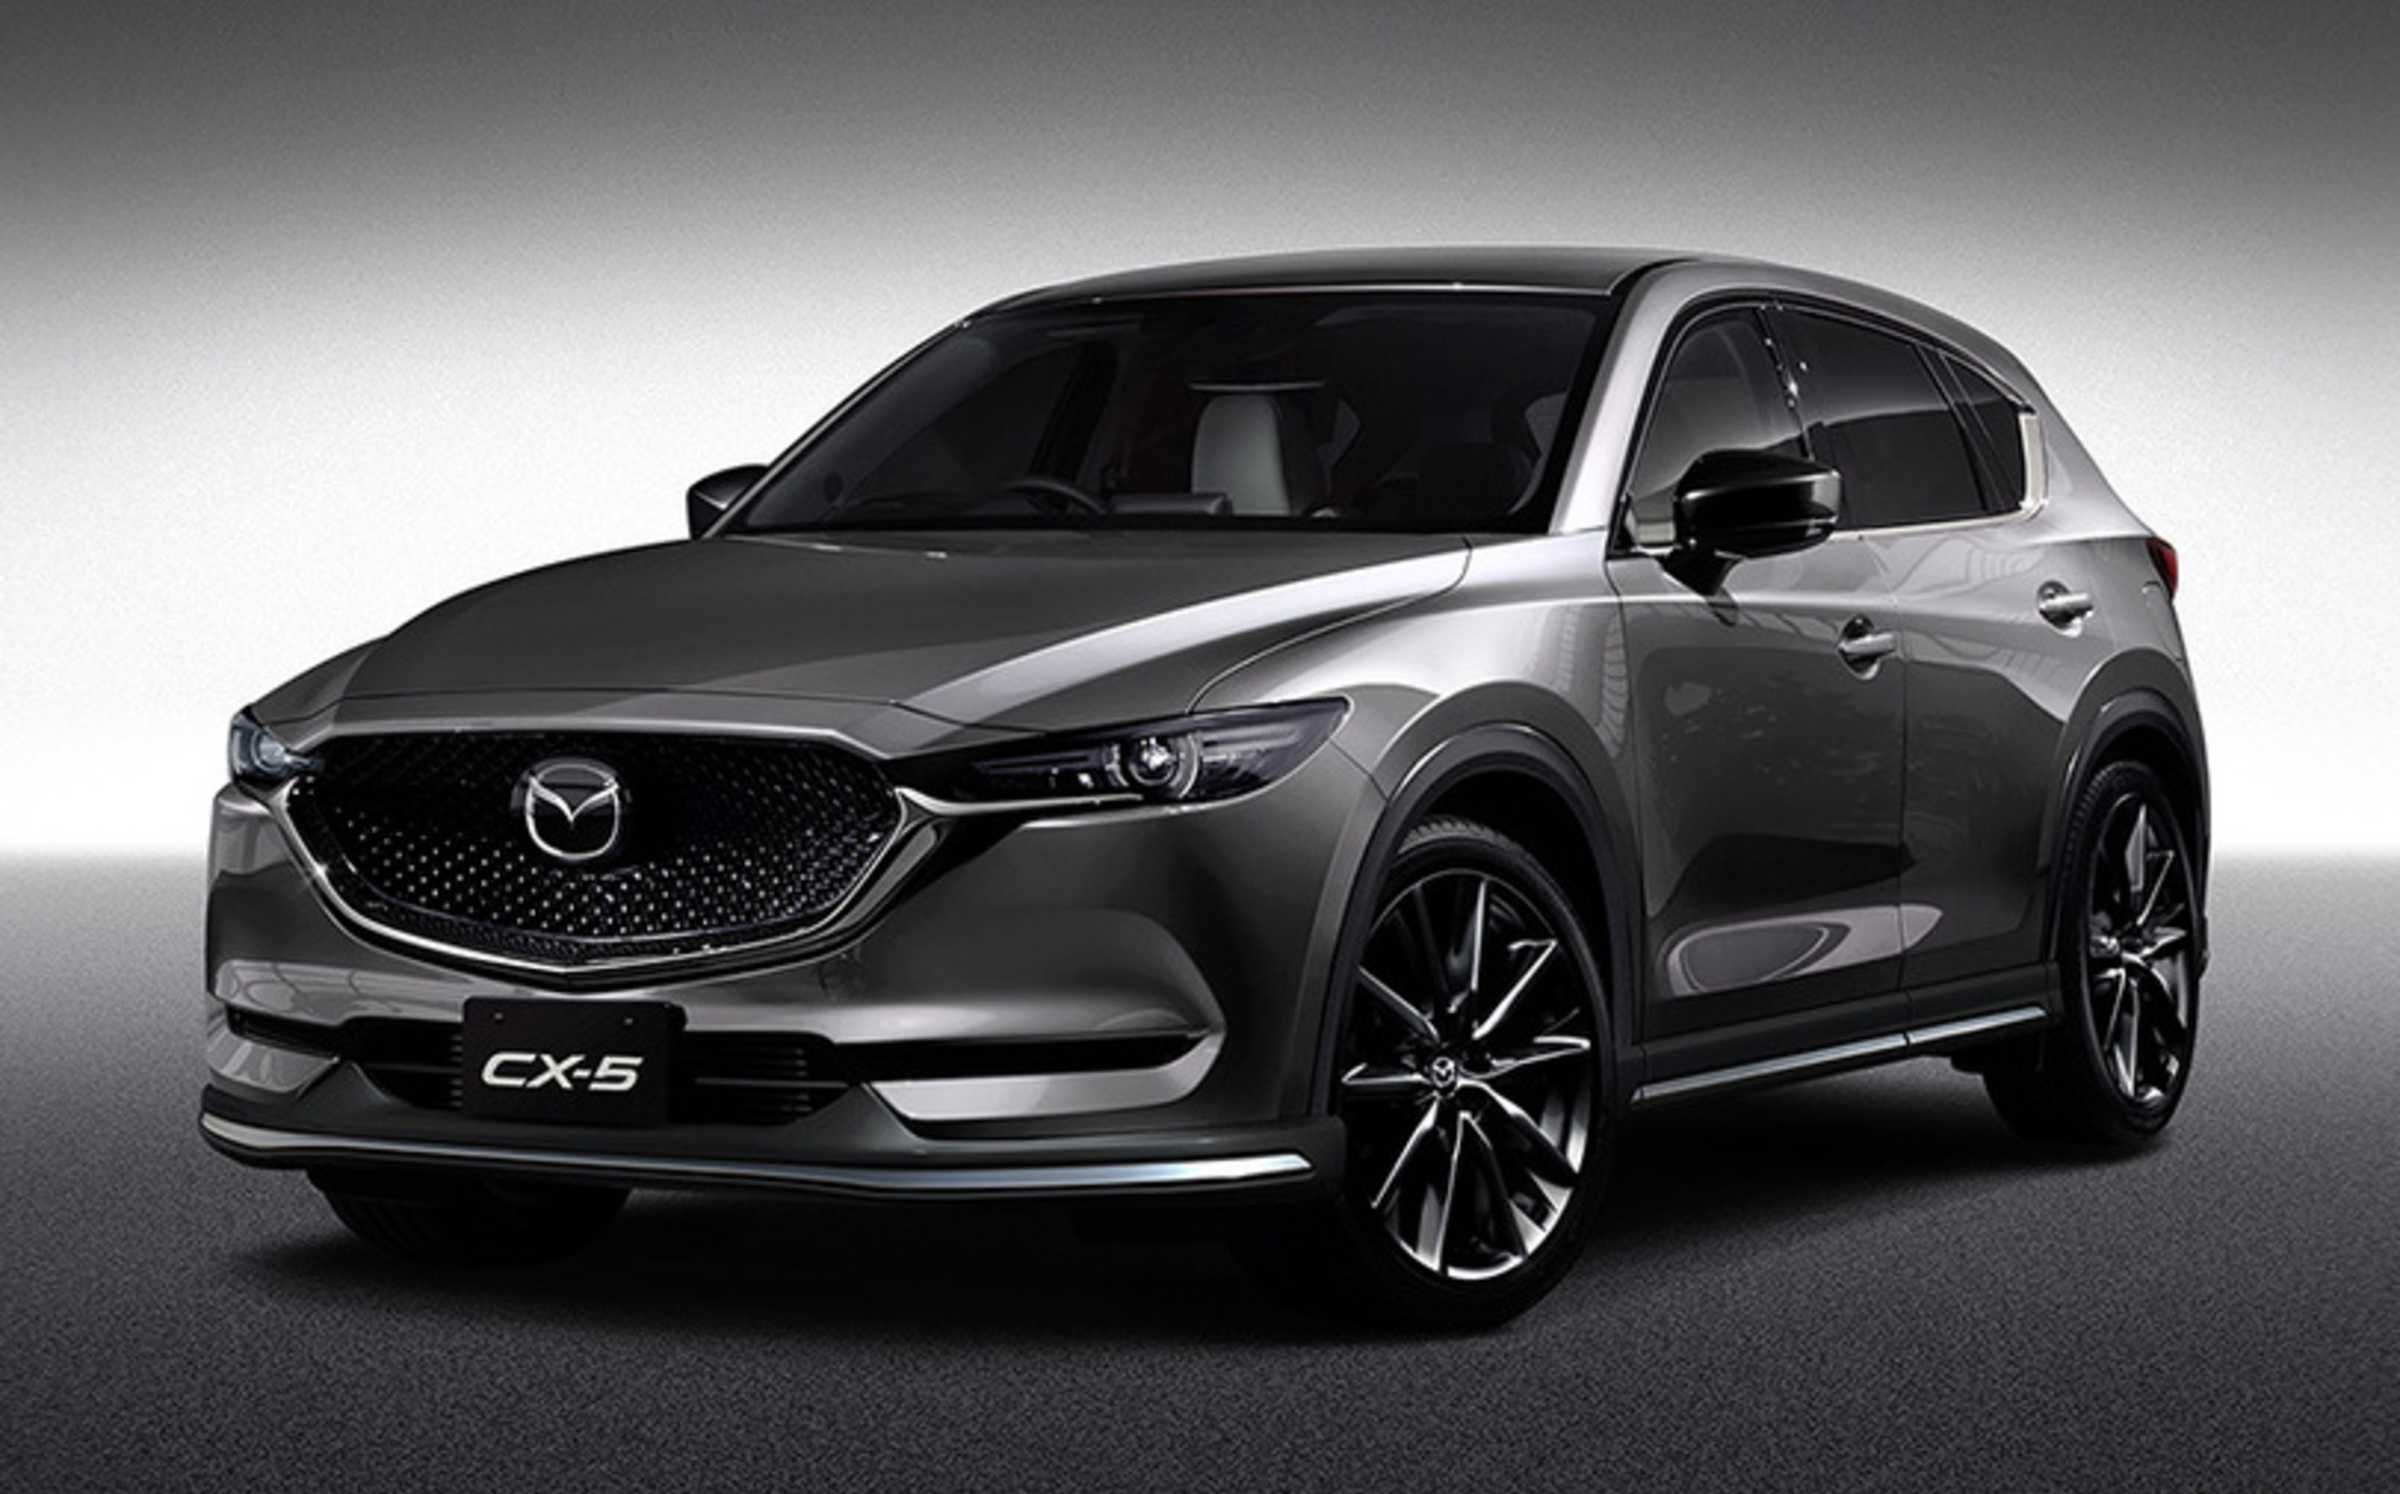 Mazda Japan S Cx 5 Takes On The Europeans With The Luxurious Custom Style Appearance Package Mazda Suv Mazda Cx5 Mazda